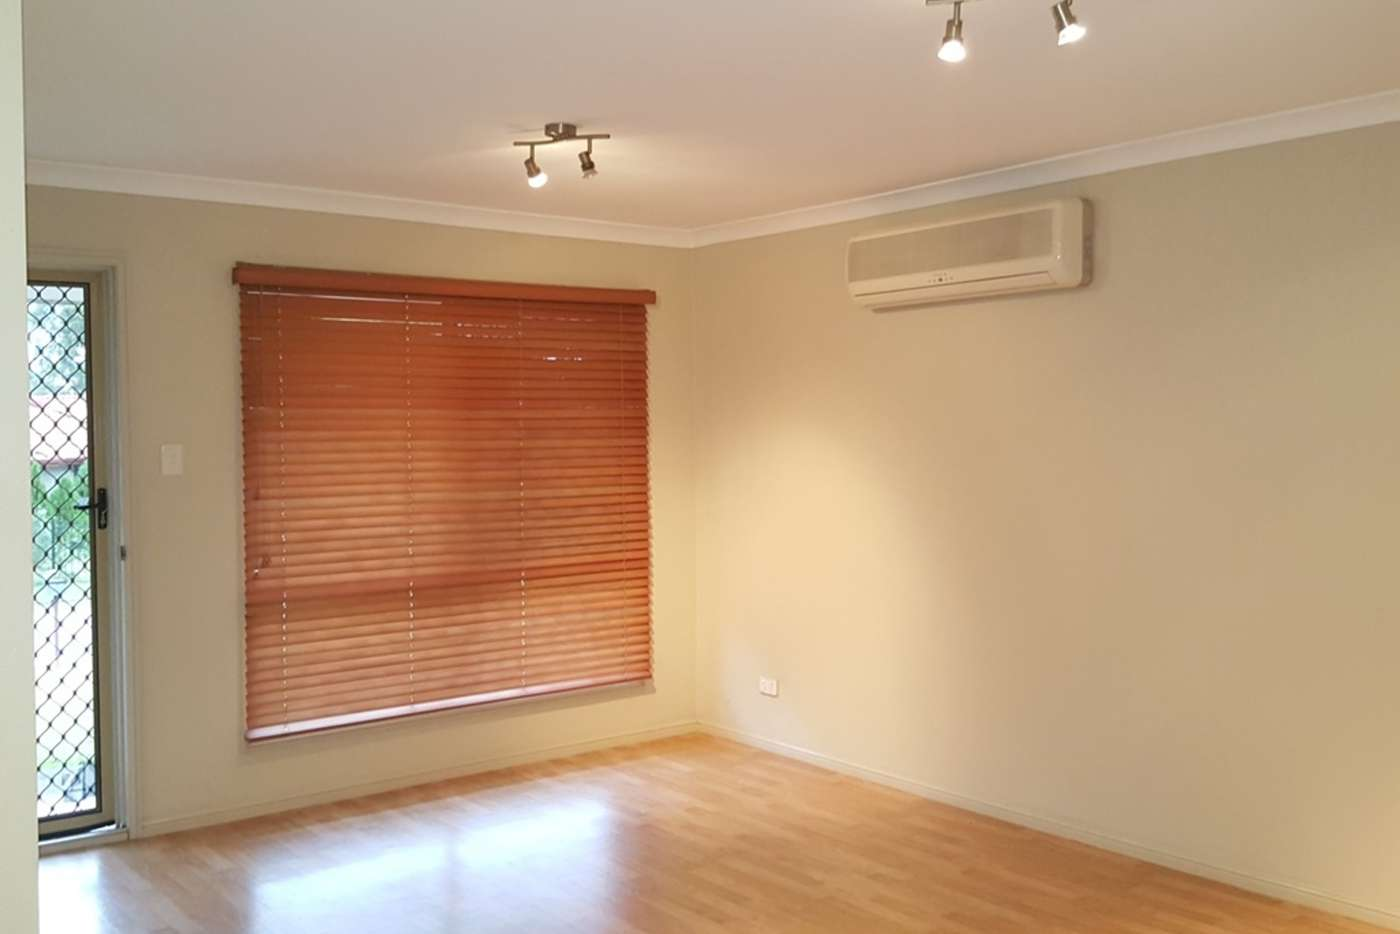 Sixth view of Homely house listing, 13 Melrose Place, Runcorn QLD 4113